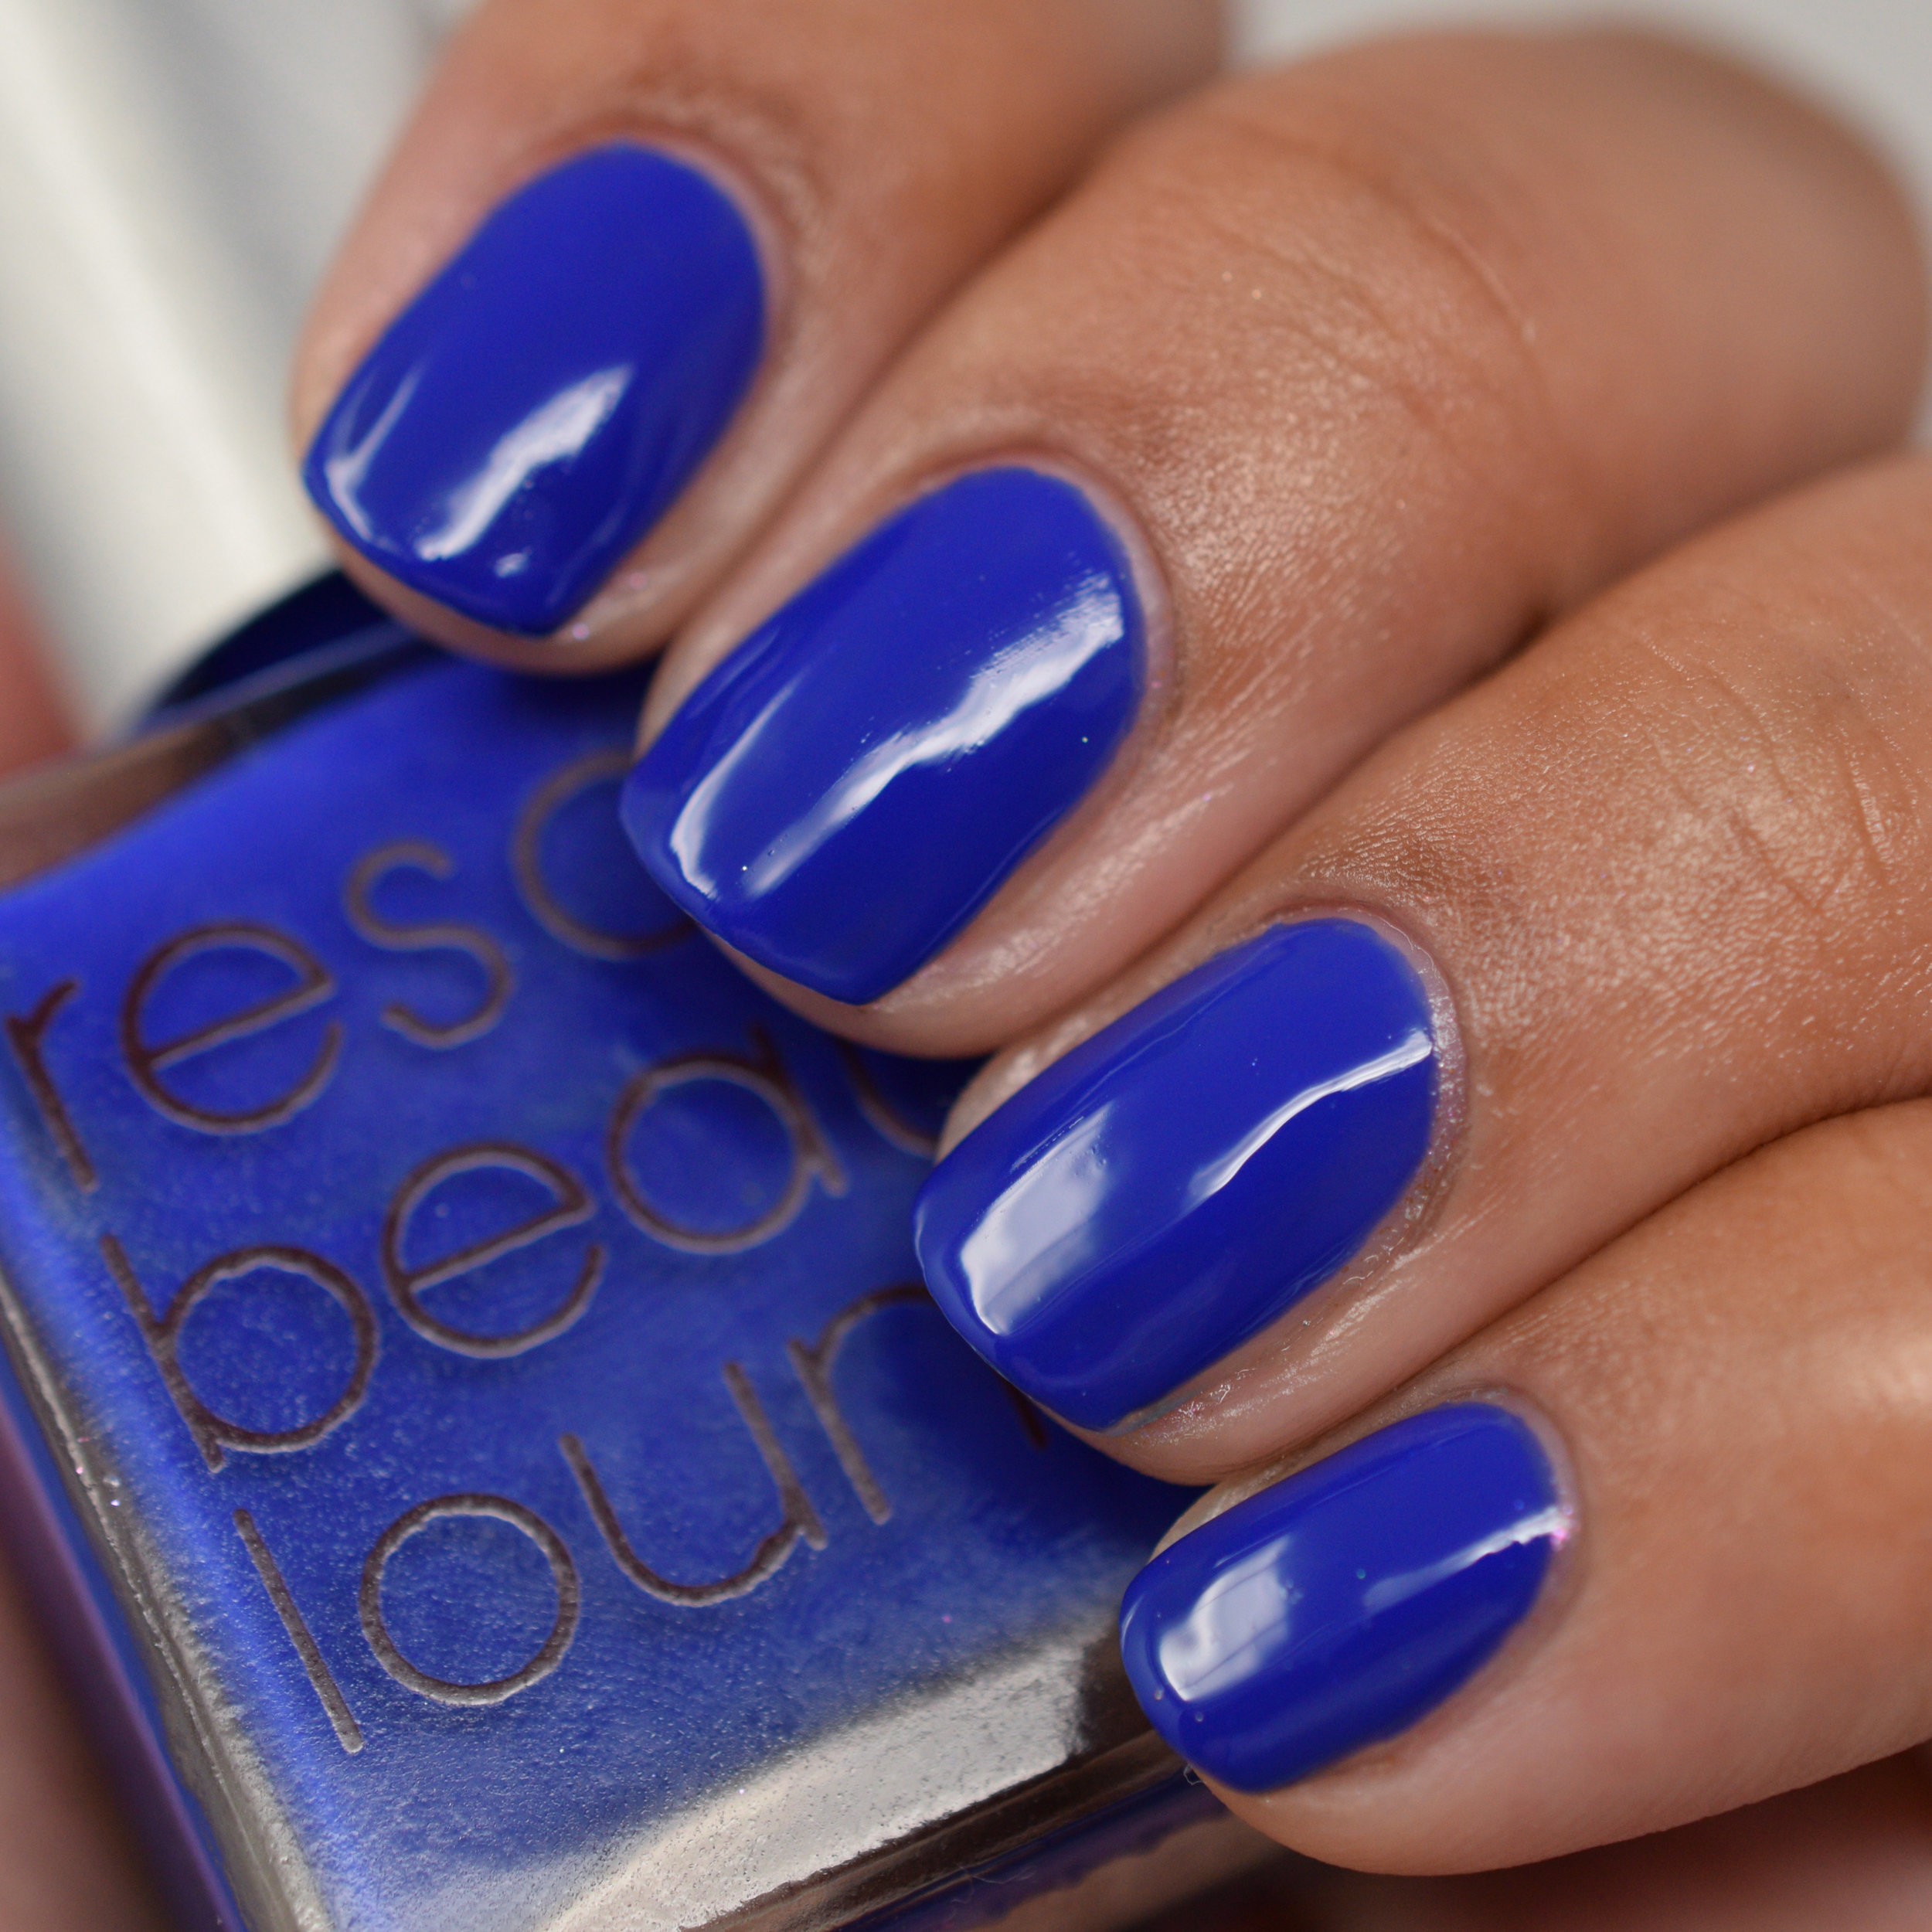 Rescue Beauty Lounge Fan Collection Spring 2012 - IKB 2012.jpg